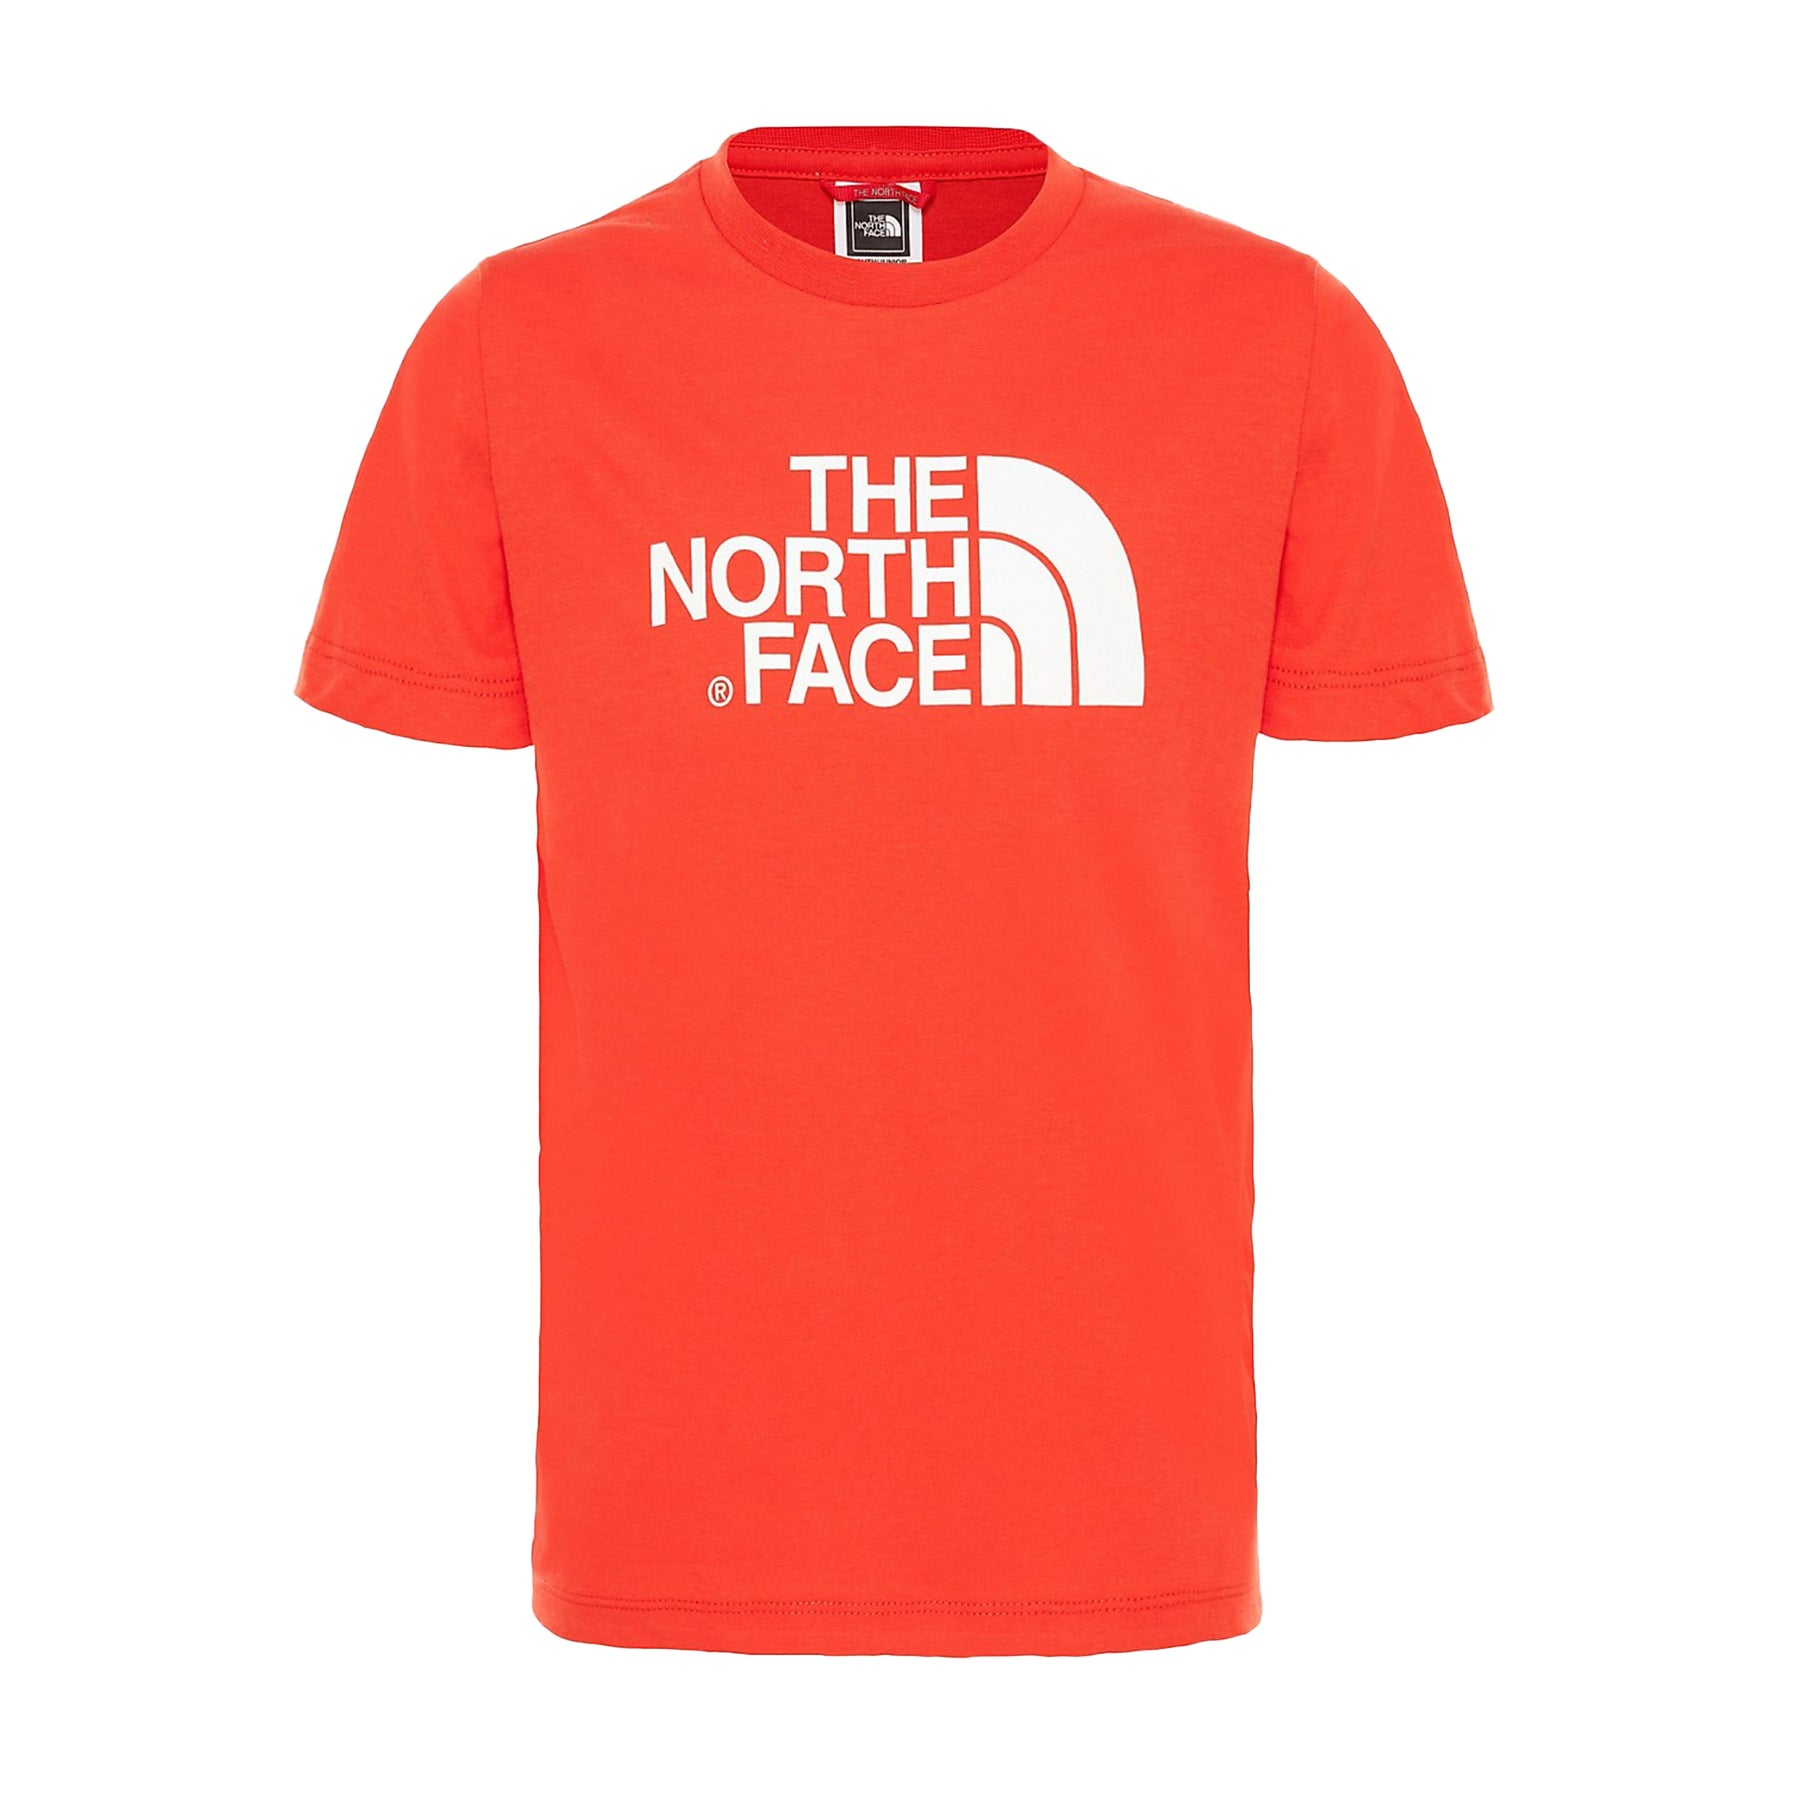 North Face Easy Kids Short Sleeve T-Shirt - Fiery Red TNF White